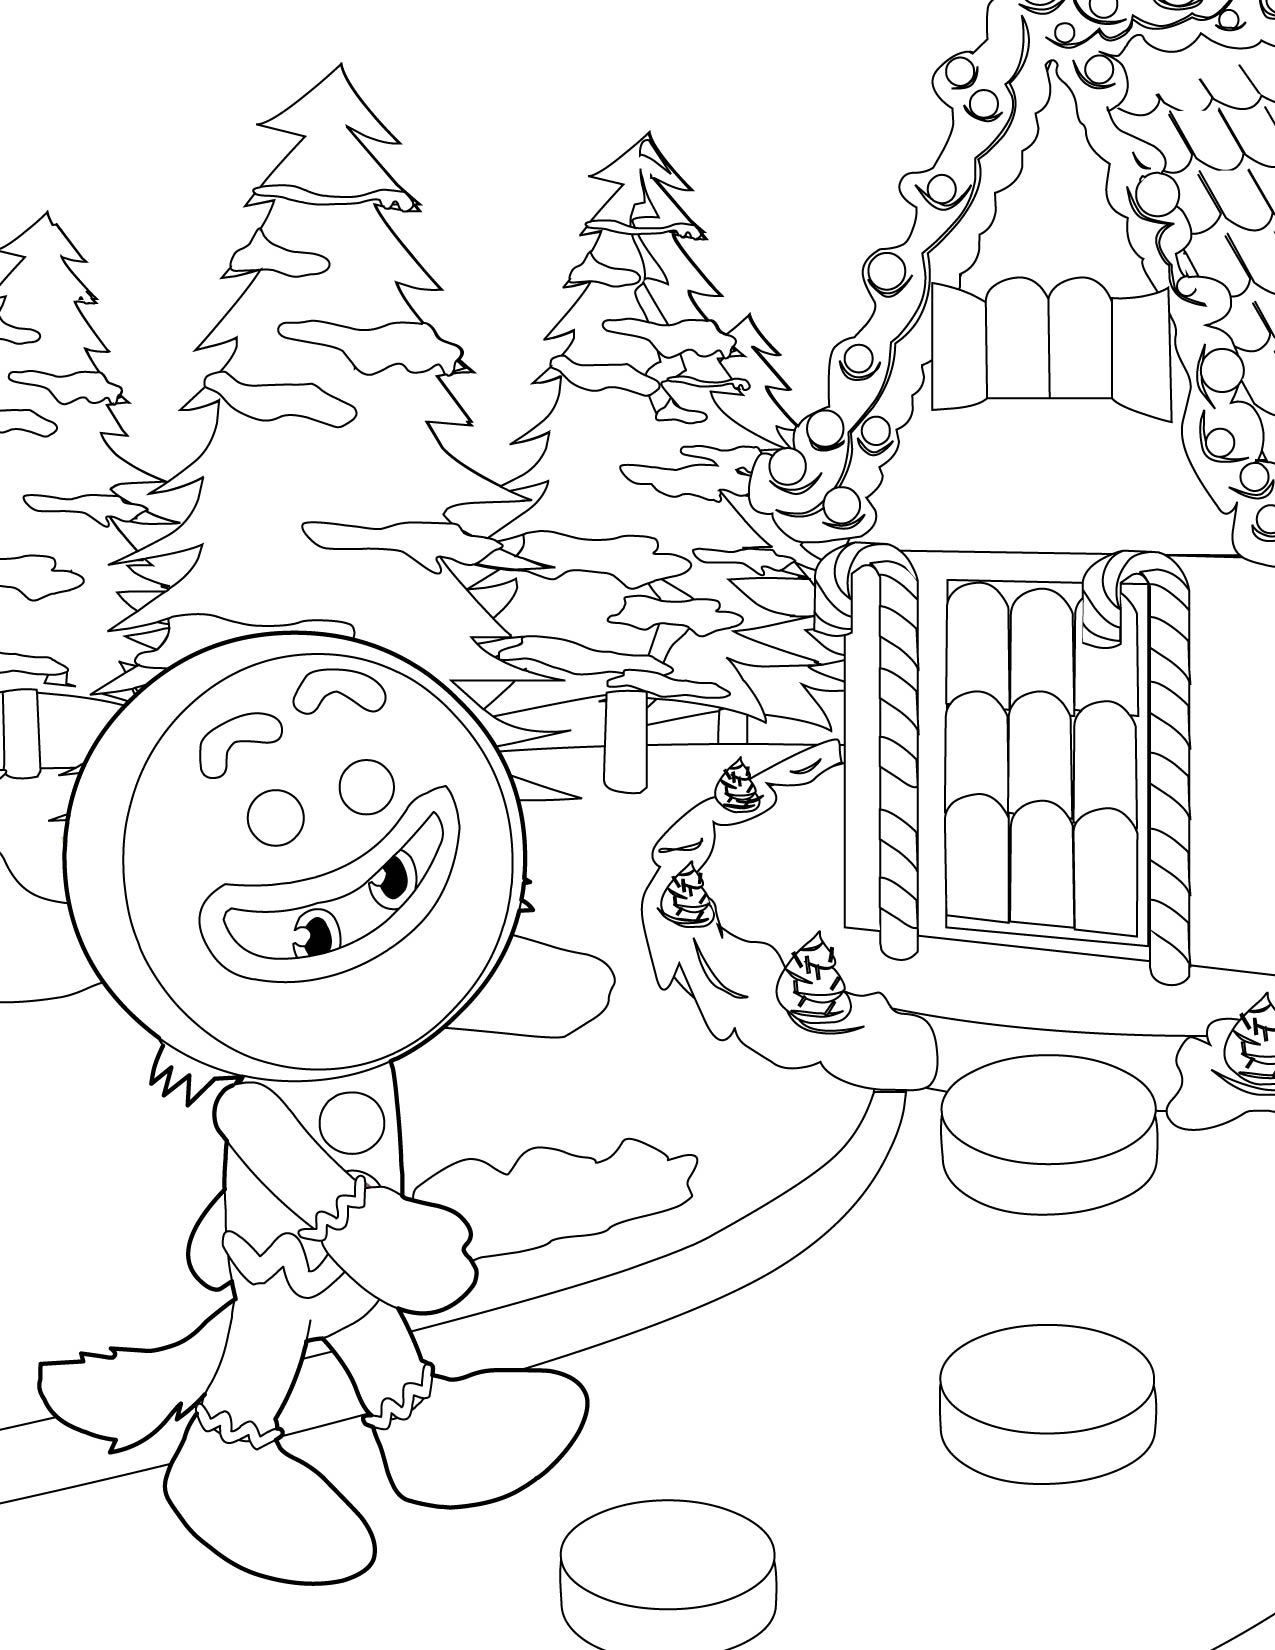 Printable coloring pages gingerbread house - Gingerbread Houses Coloring Pages